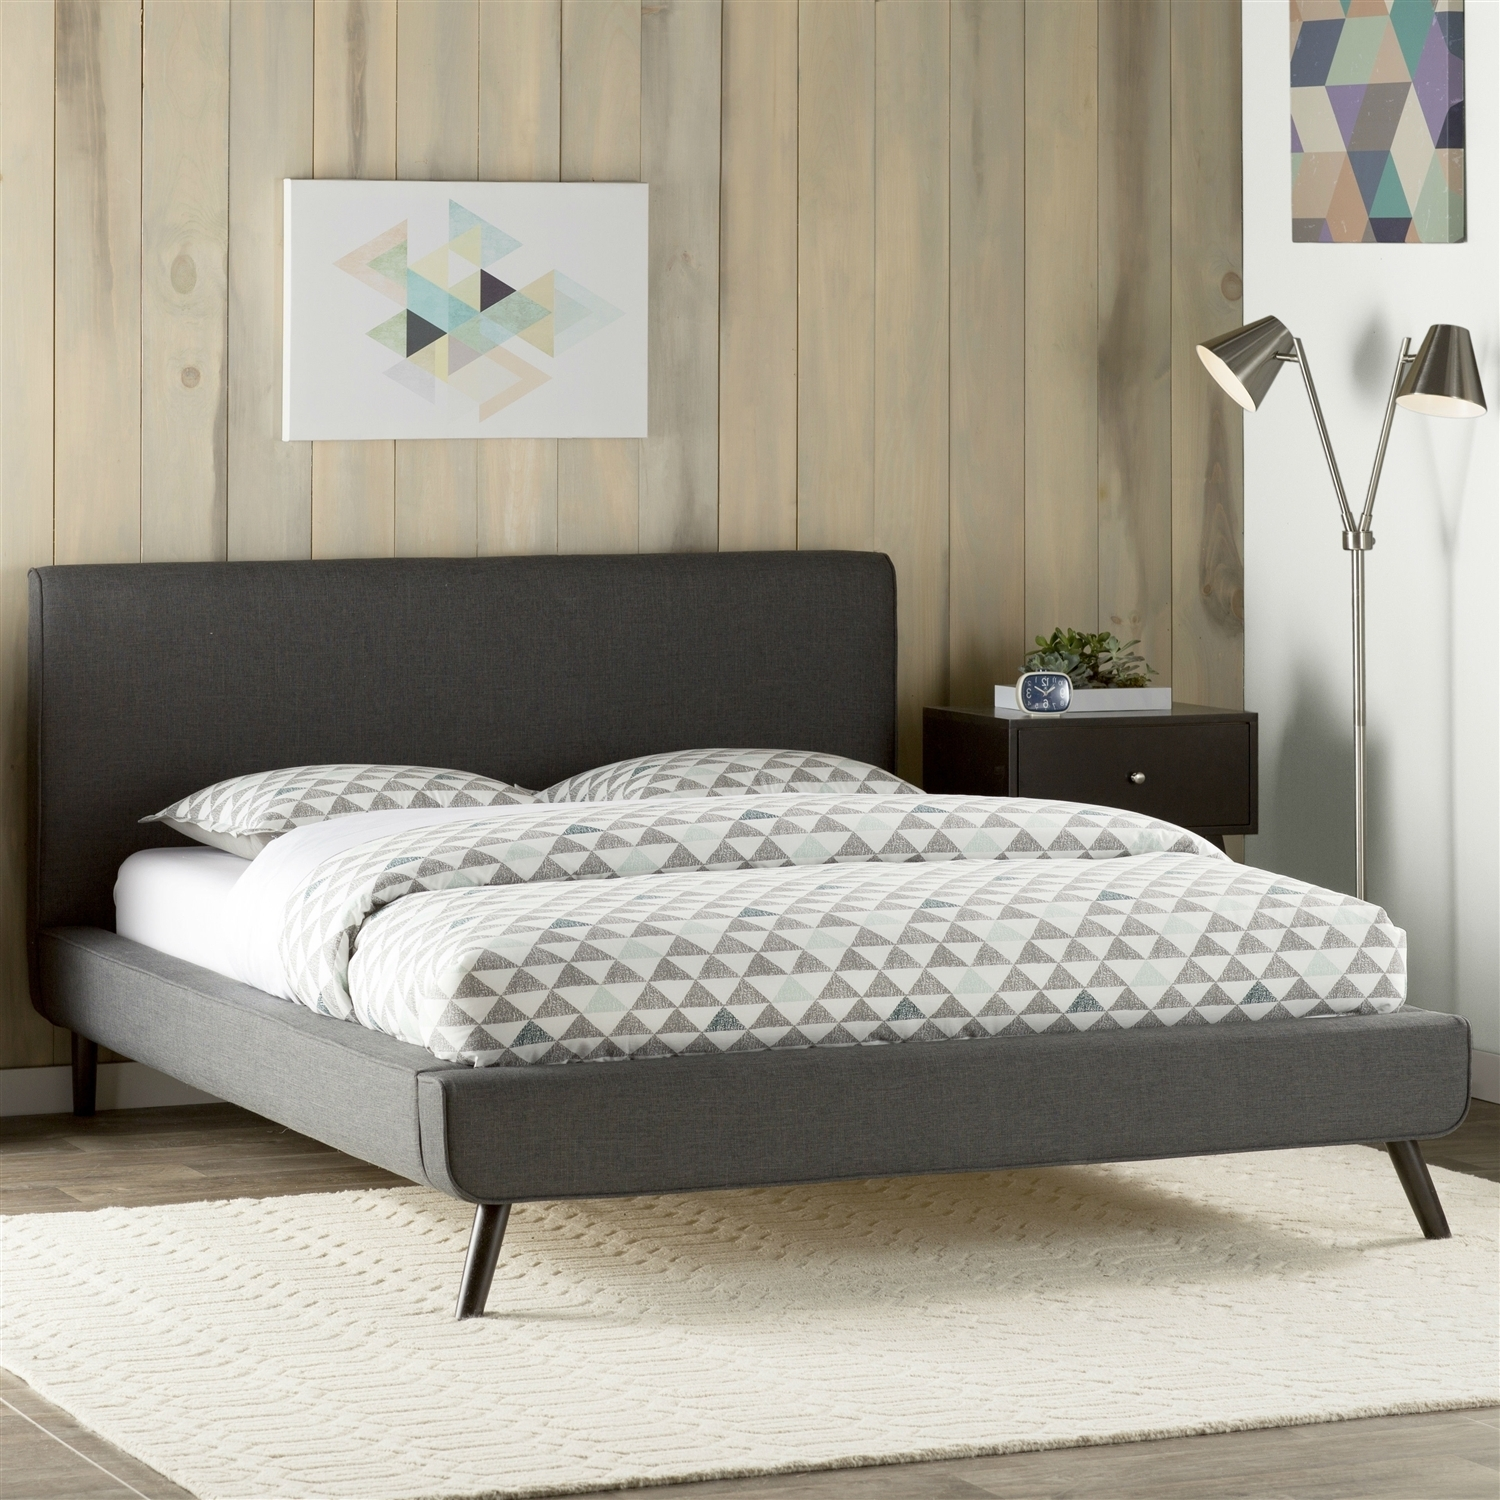 Image of: Good Gray Upholstered Headboard